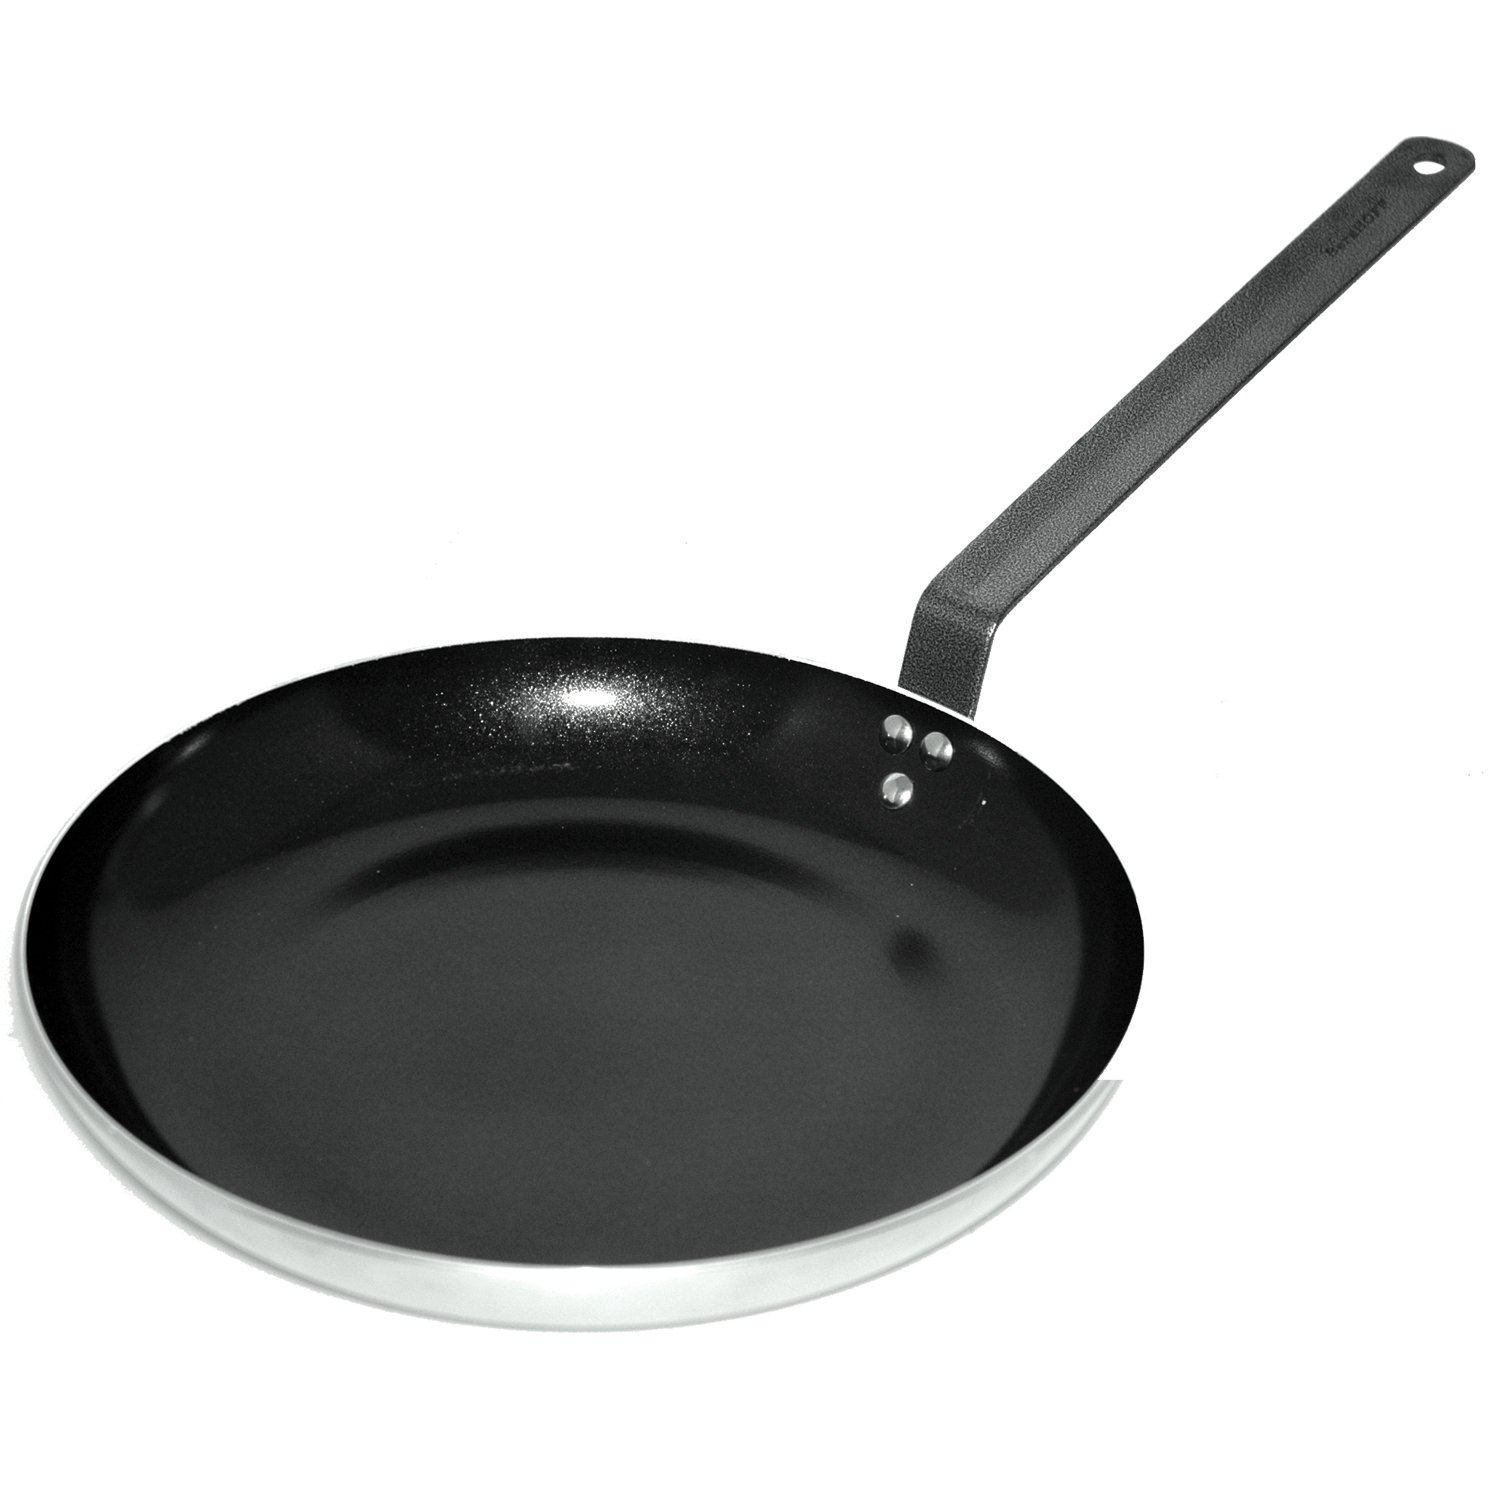 BergHOFF Hotel Line 12.5'' Non-Stick Deep Conical Pan